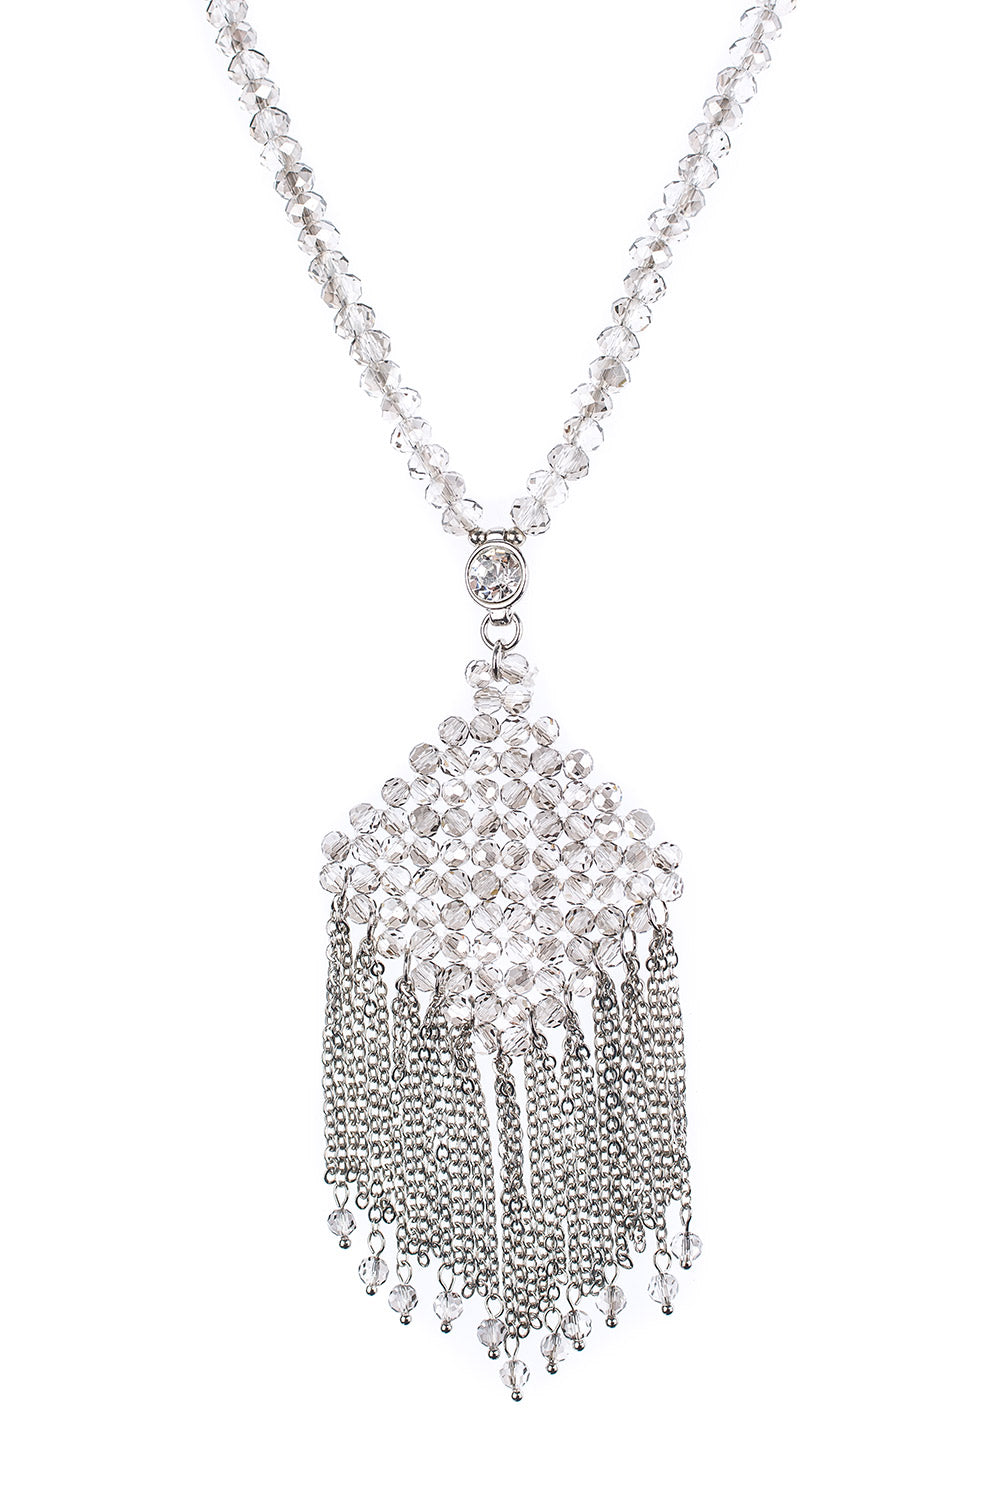 Type 2 Draped in Diamonds Necklace